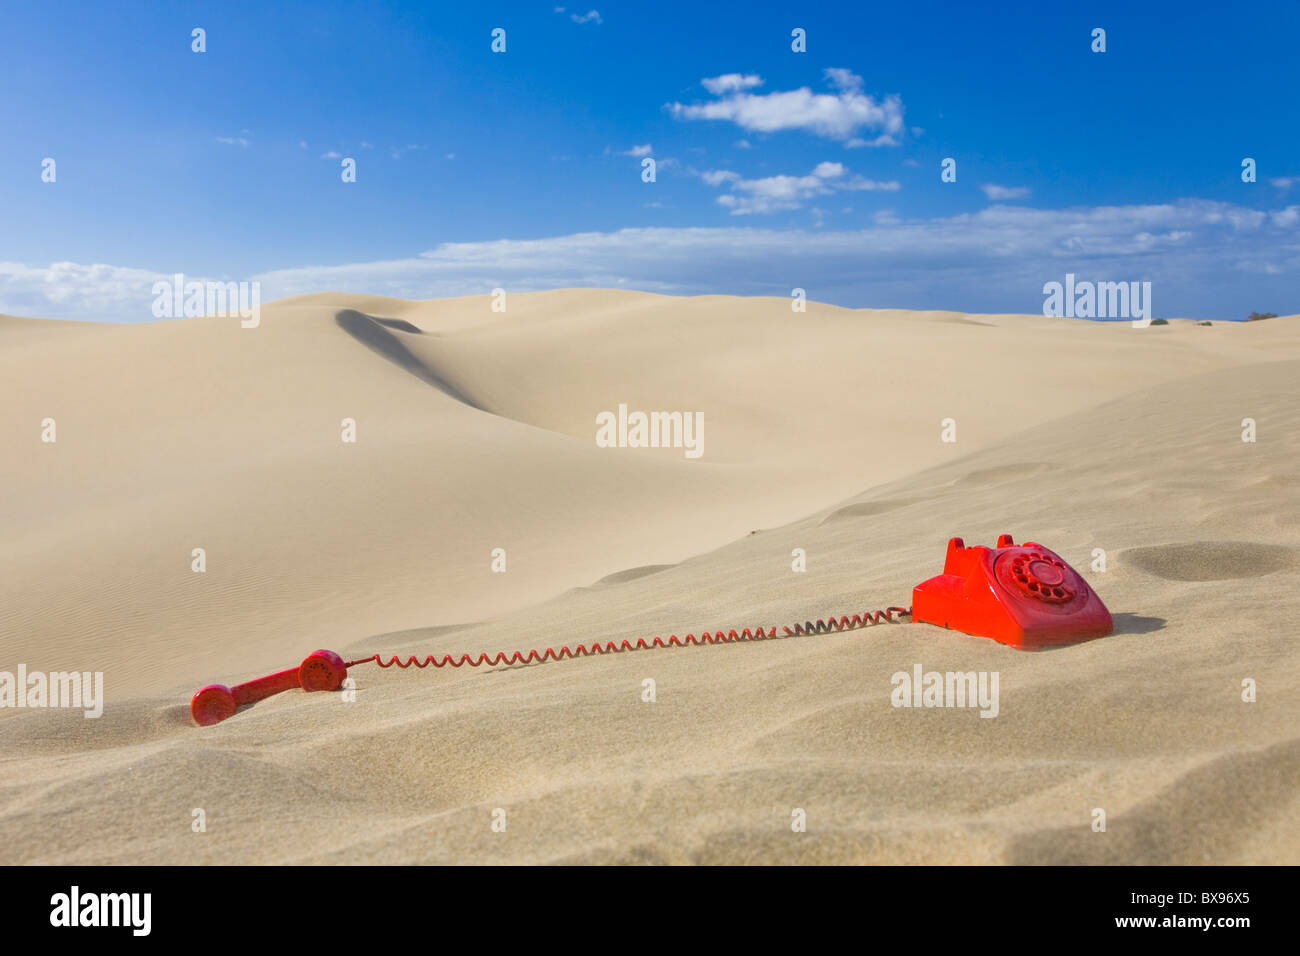 The Red Phone Must Be Answered - Stock Image